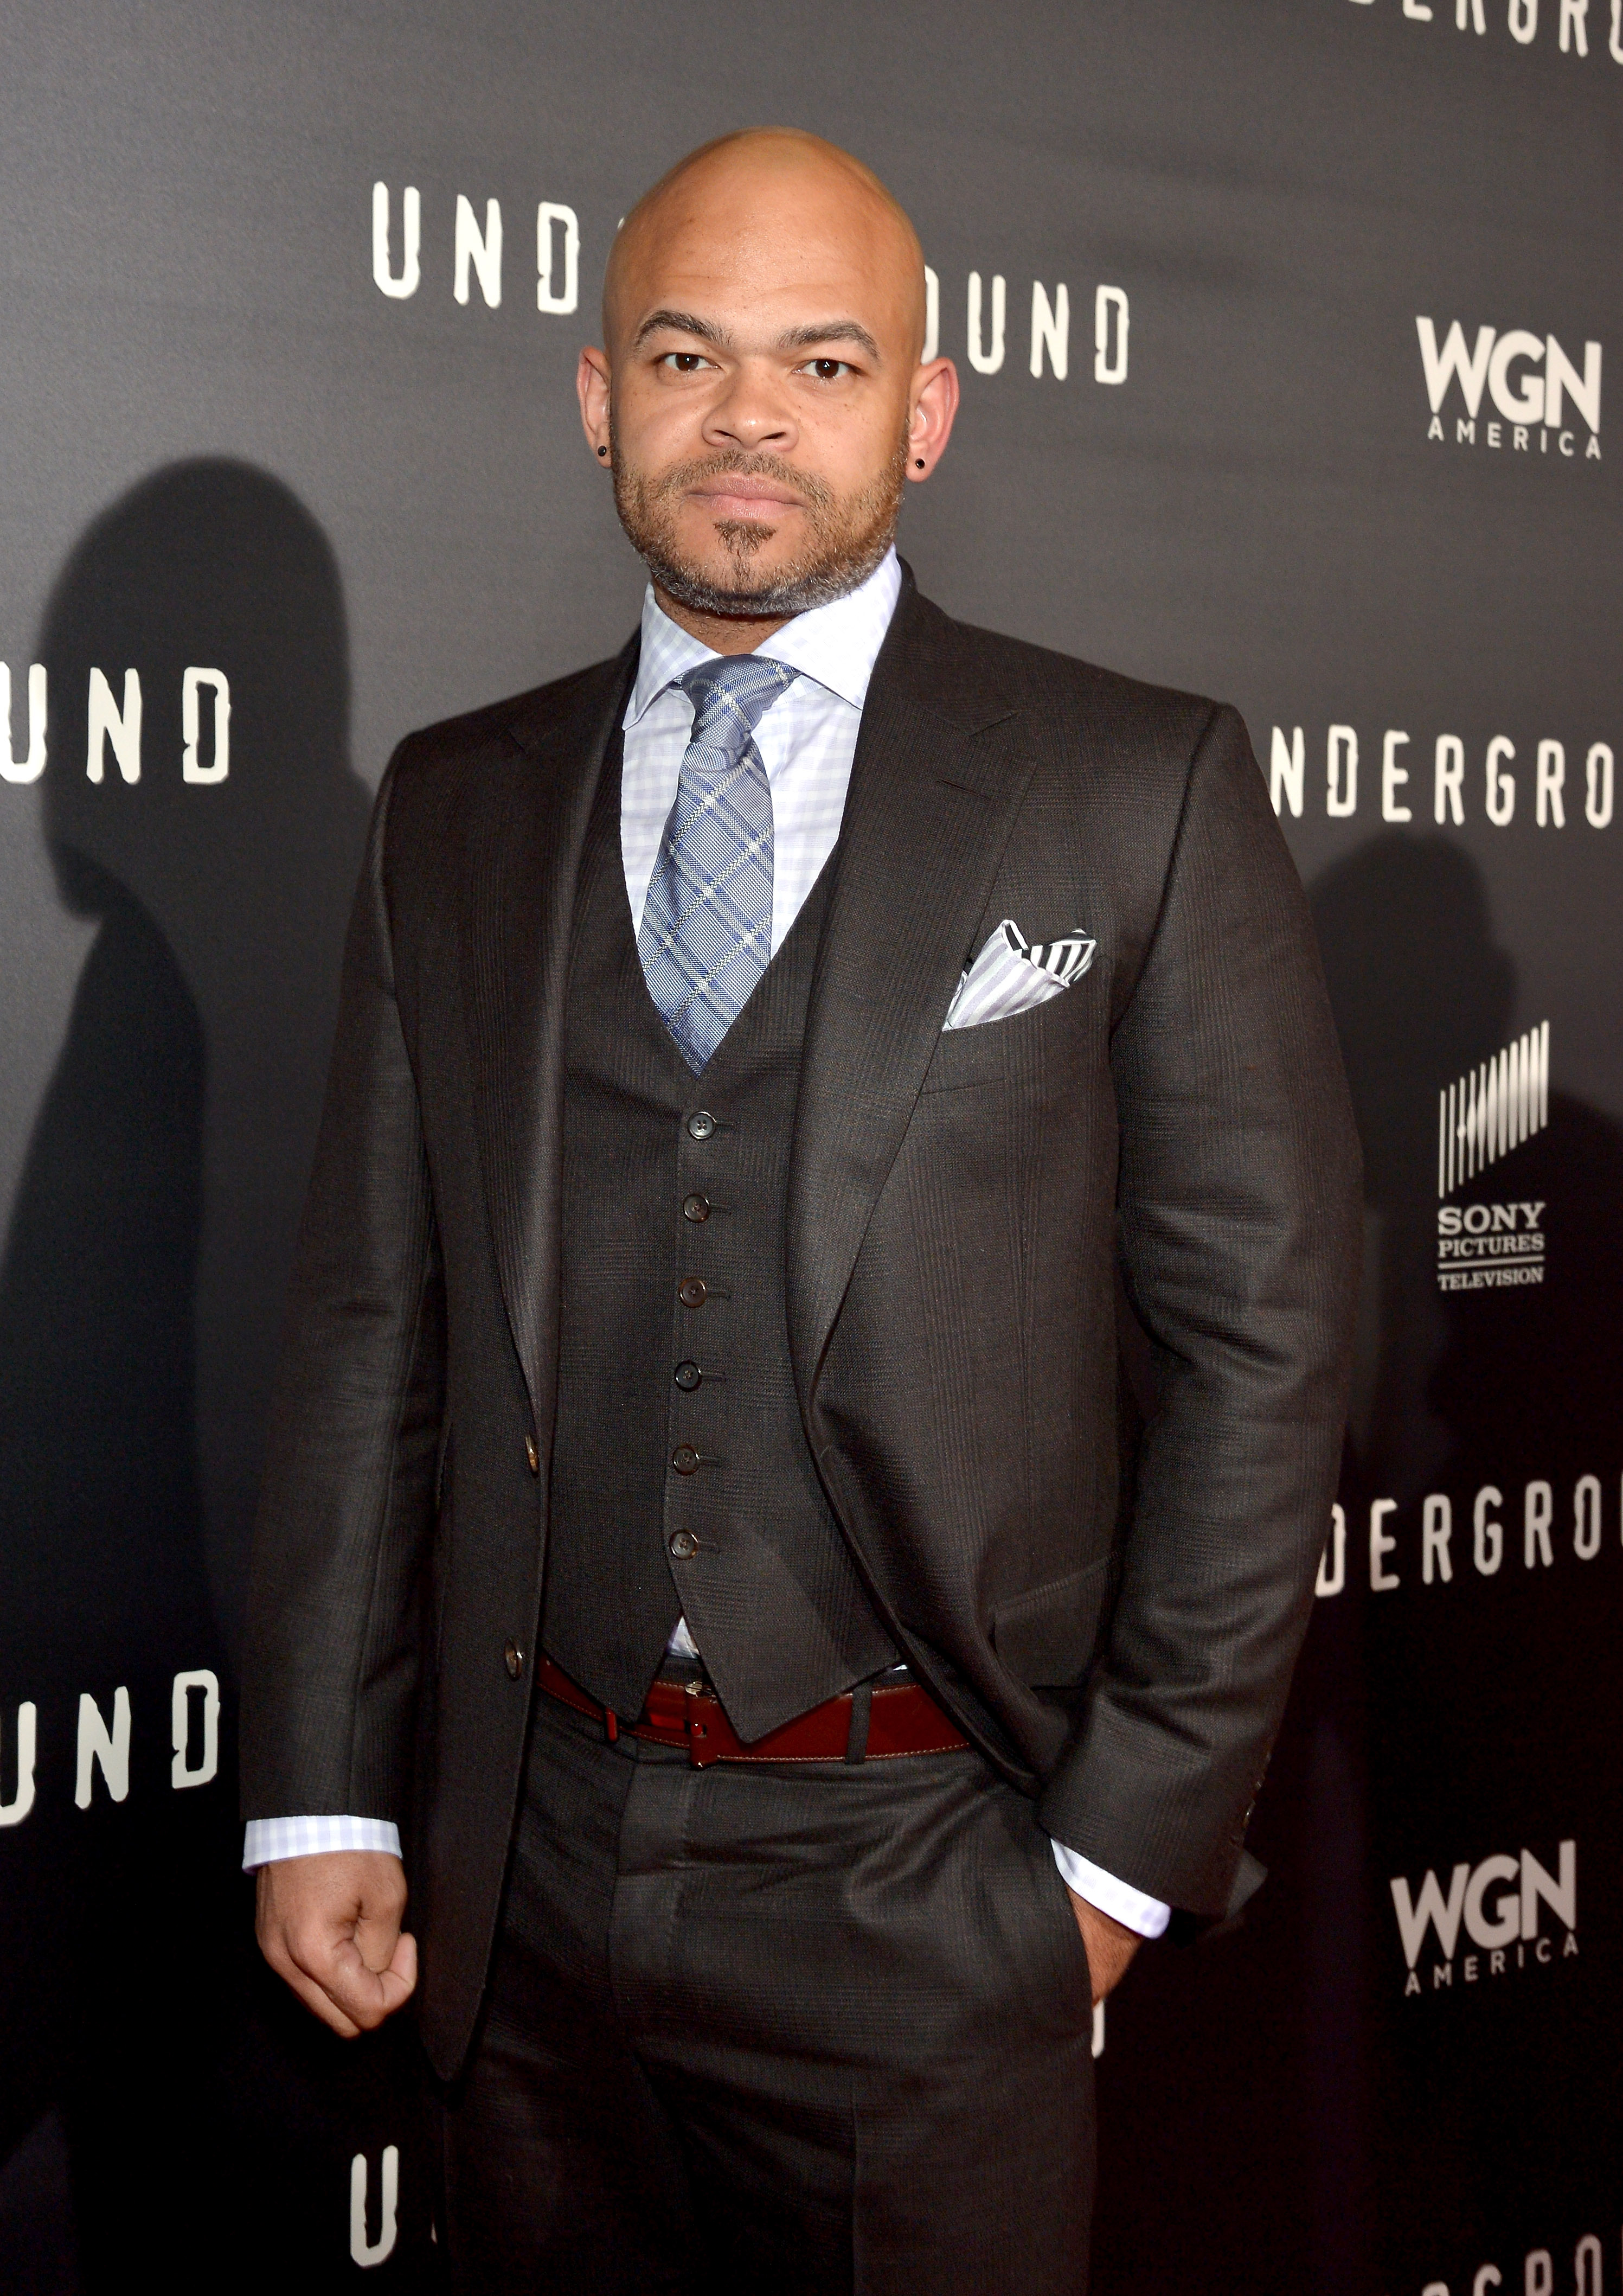 anthony hemingway related to ernest